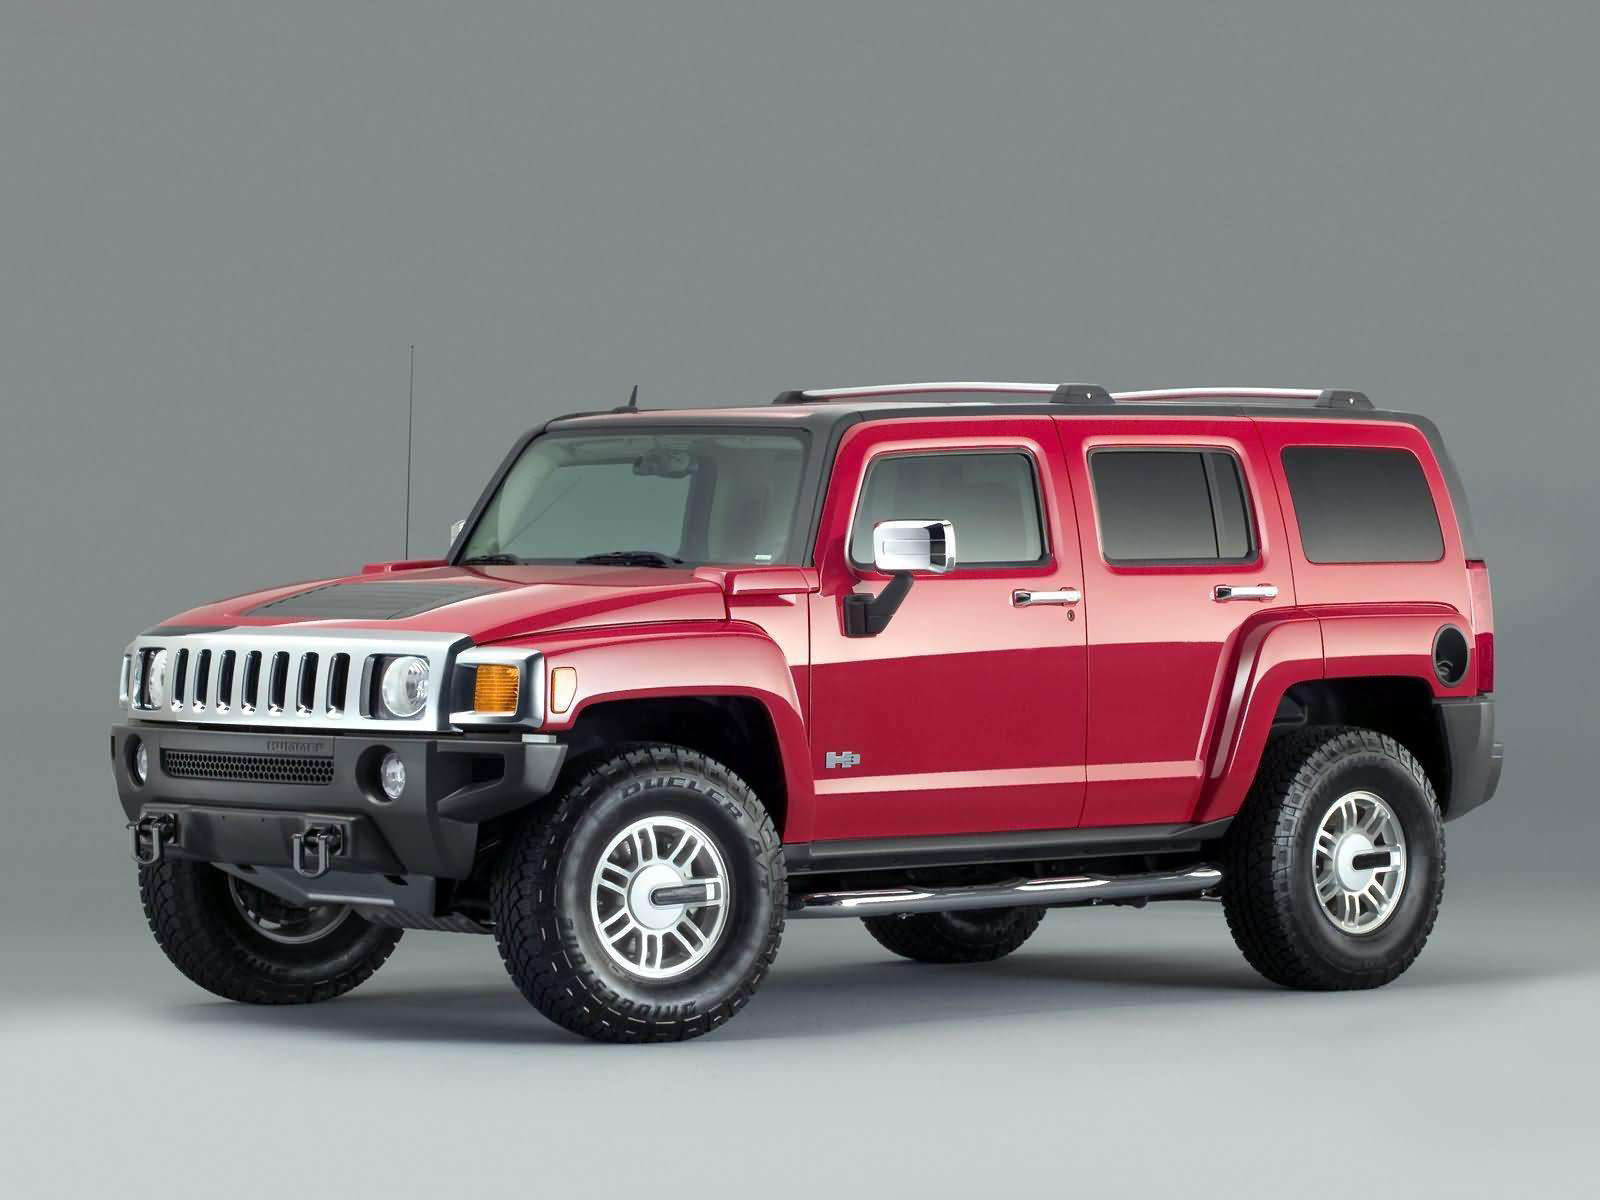 hummer automobile h3 Array - hummer h3 manual trans ebook rh hummer h3  manual trans ebook argodata us